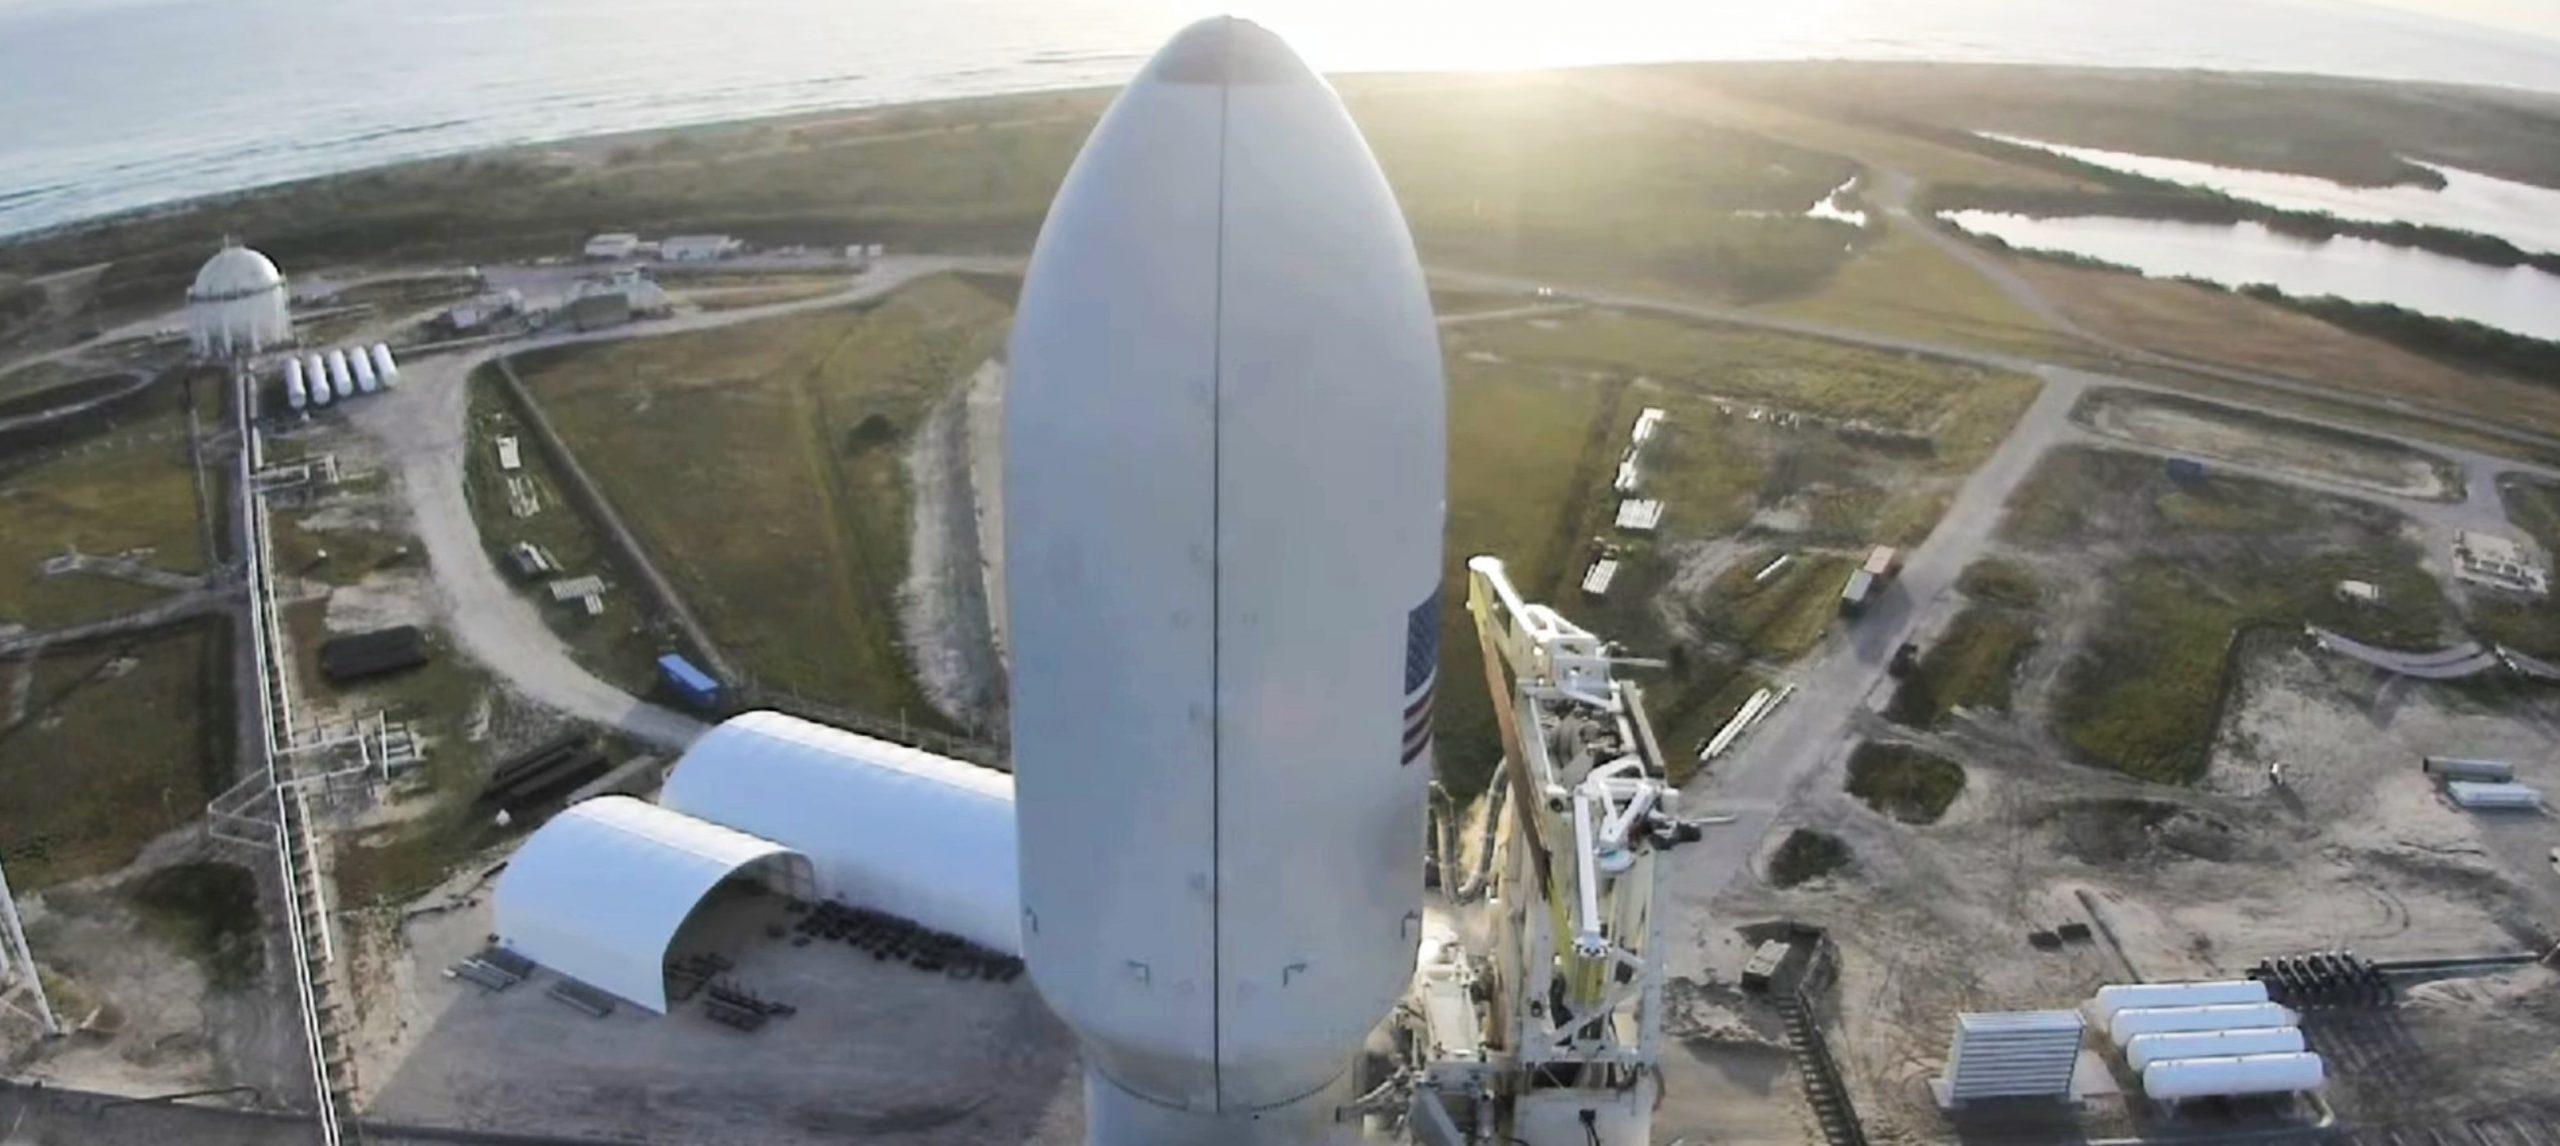 Starlink V1 L5 webcast 031820 (SpaceX) 2